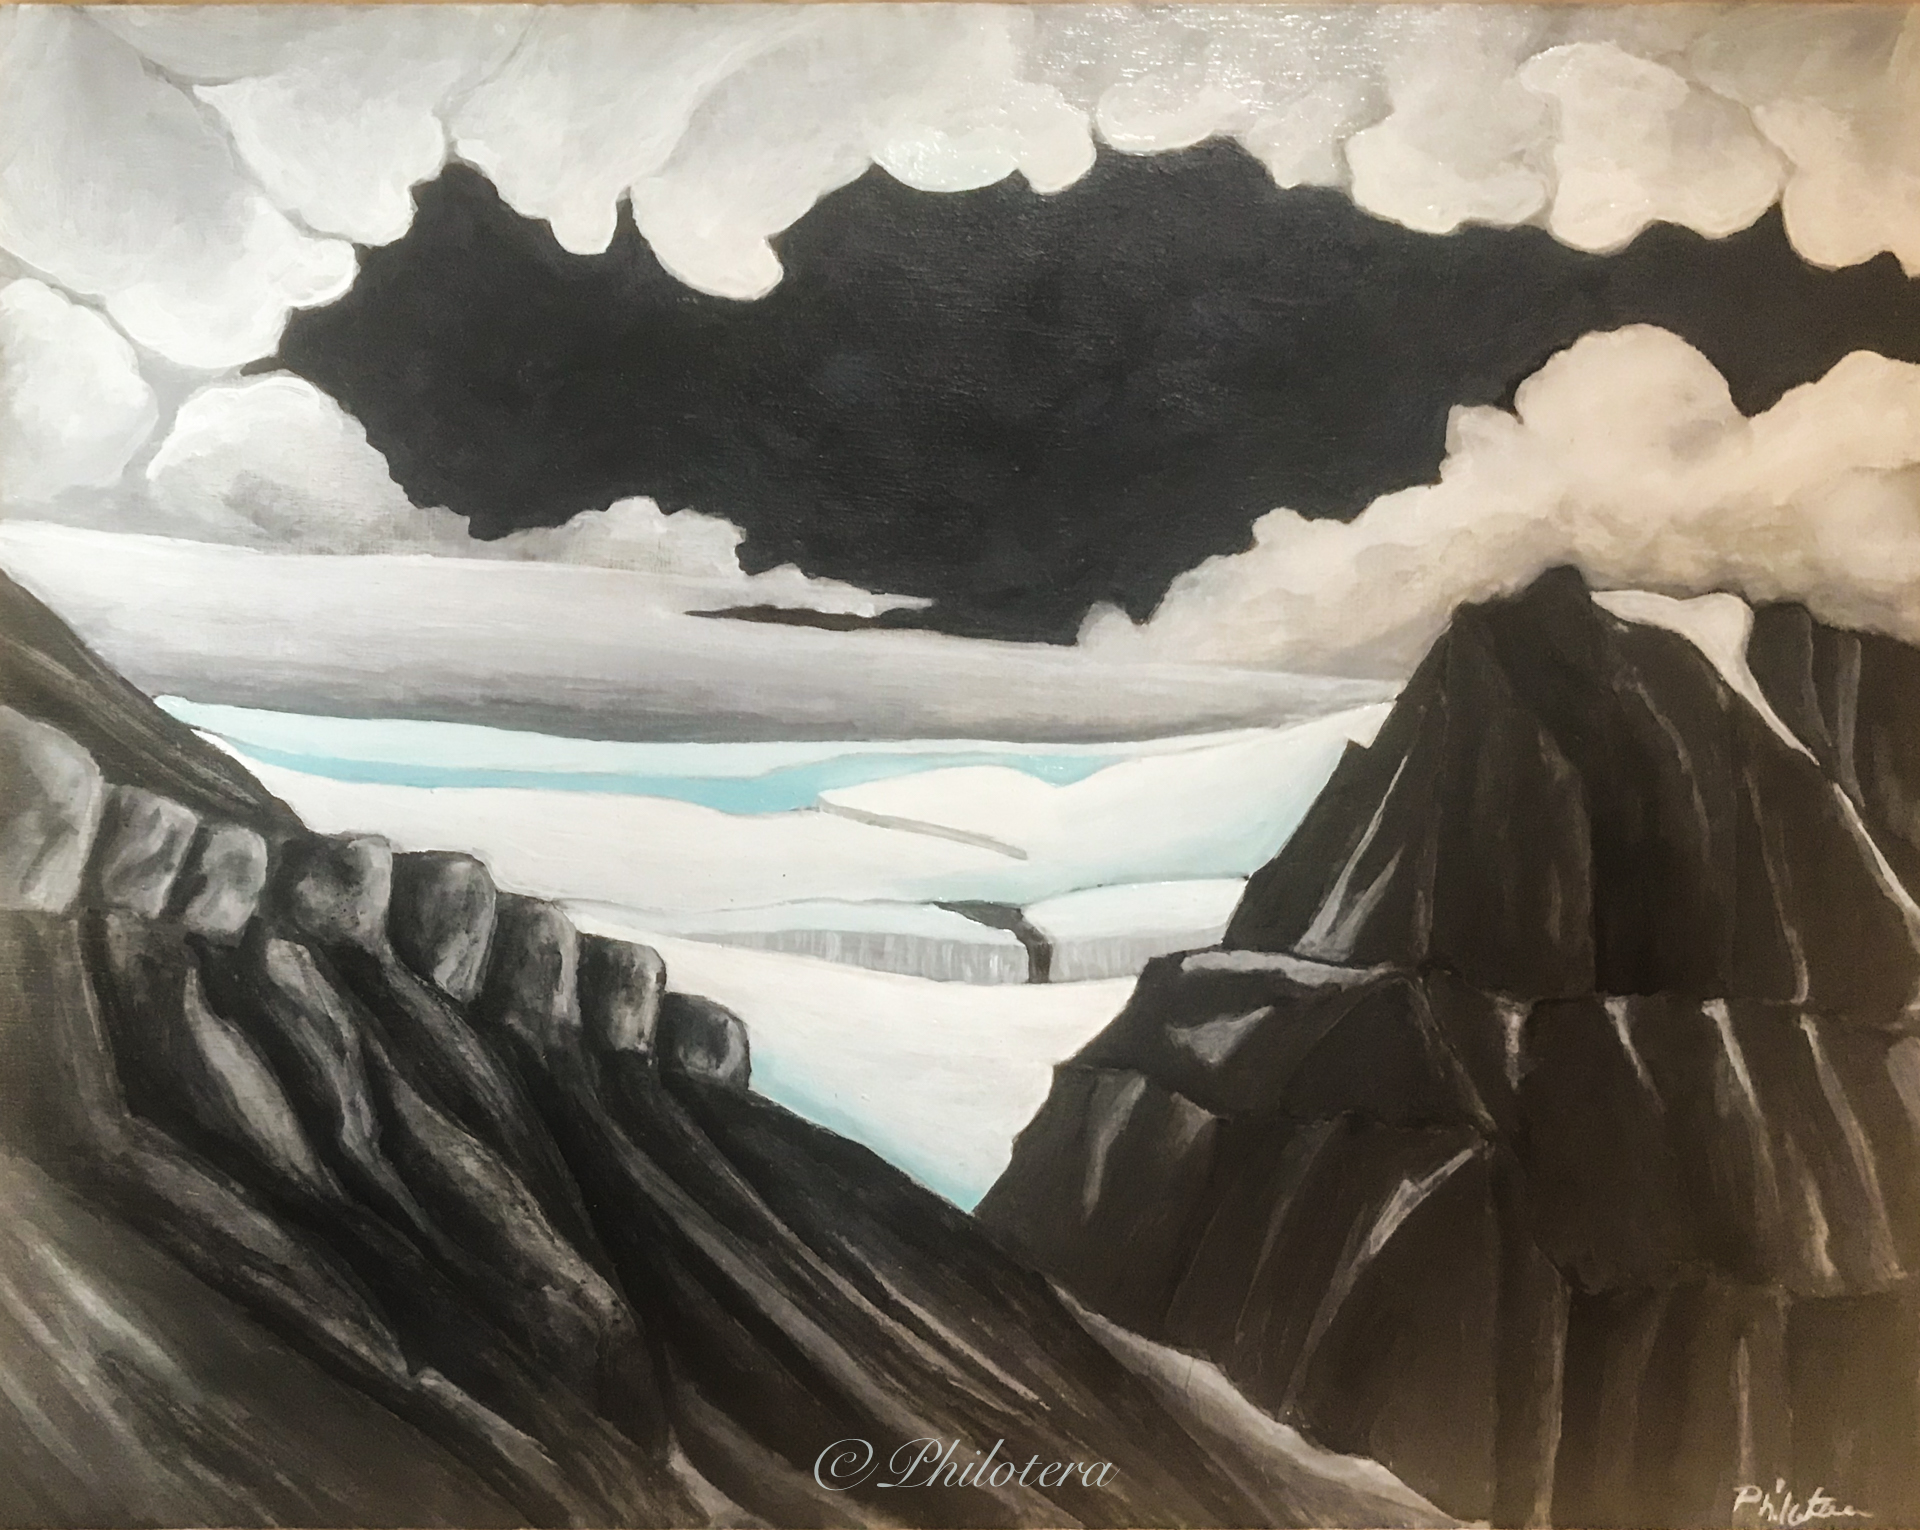 painting of Longyear valley and glacier